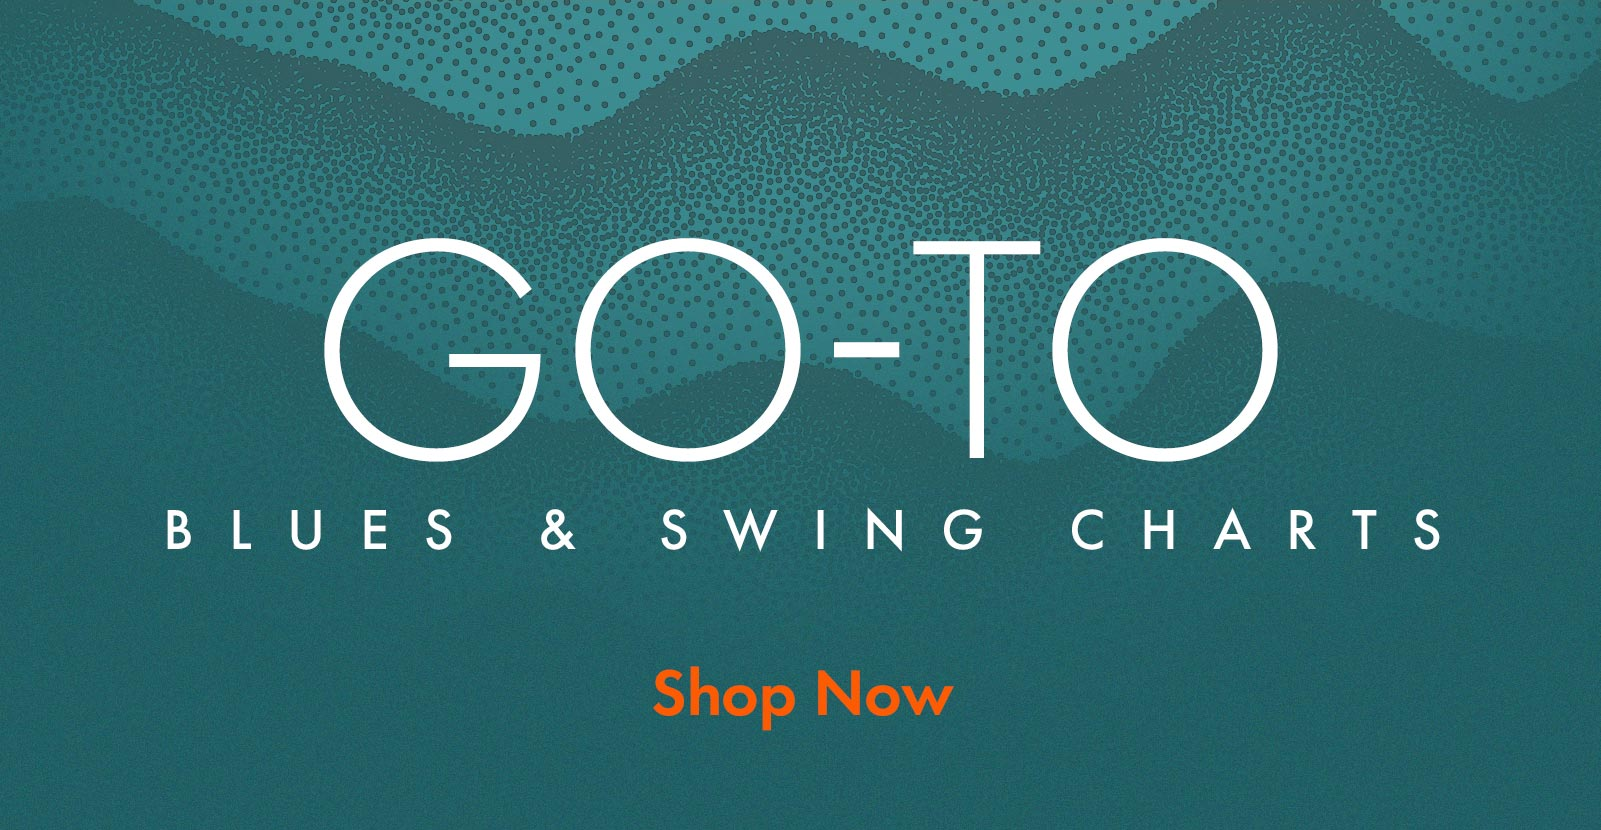 Go-to blues and swing charts. Shop Now!